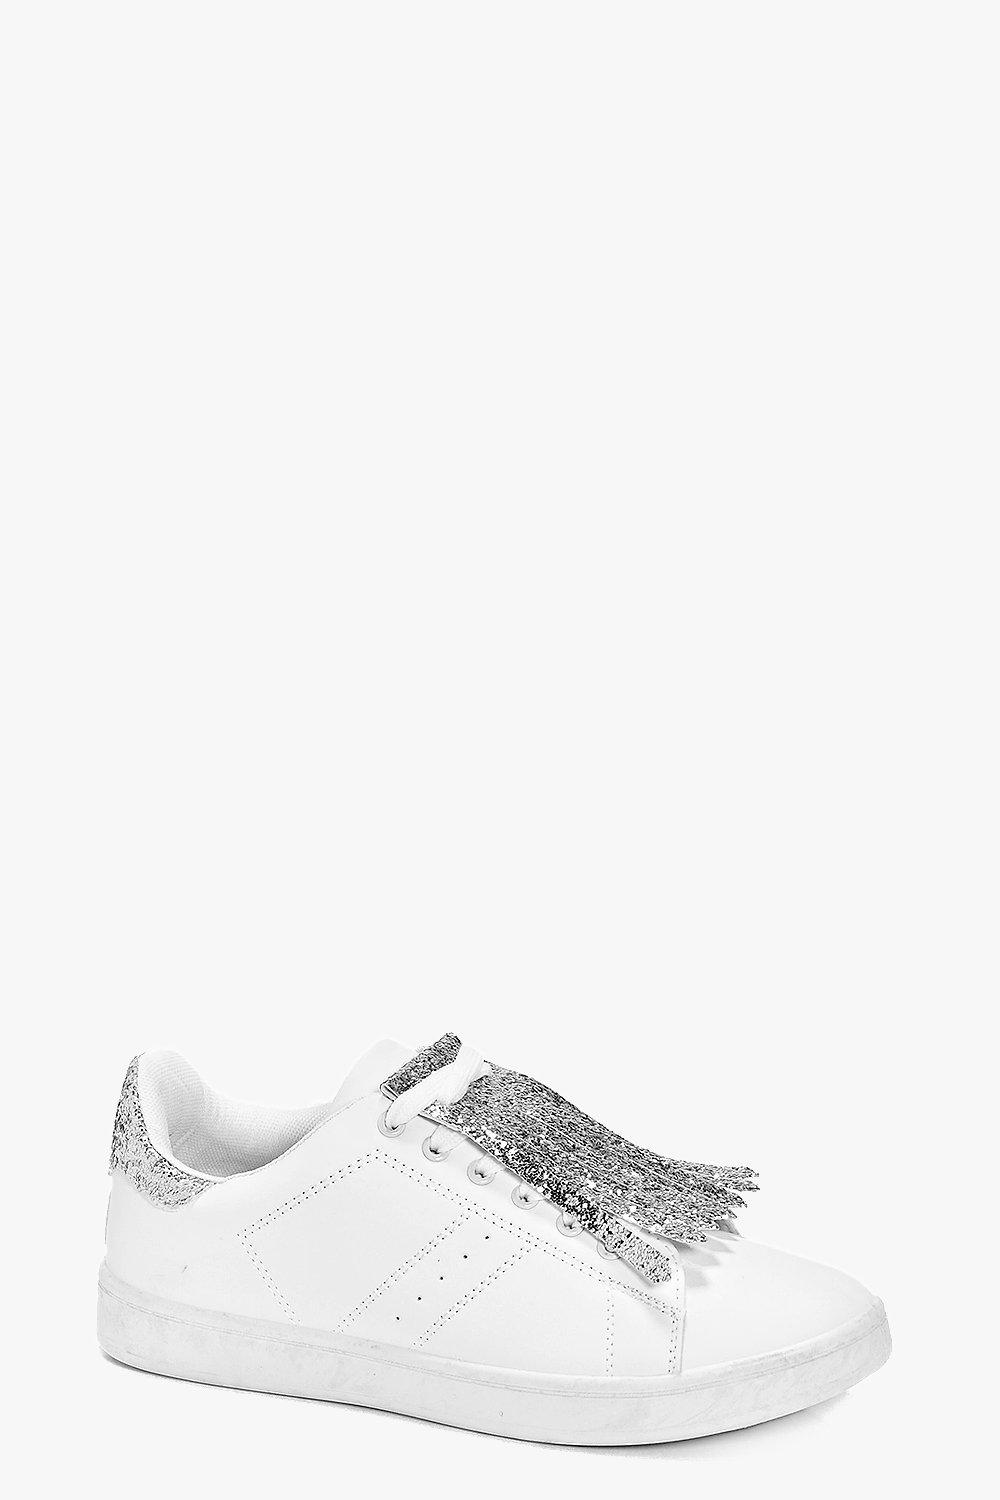 Fringe Front Lace Up Trainer - white